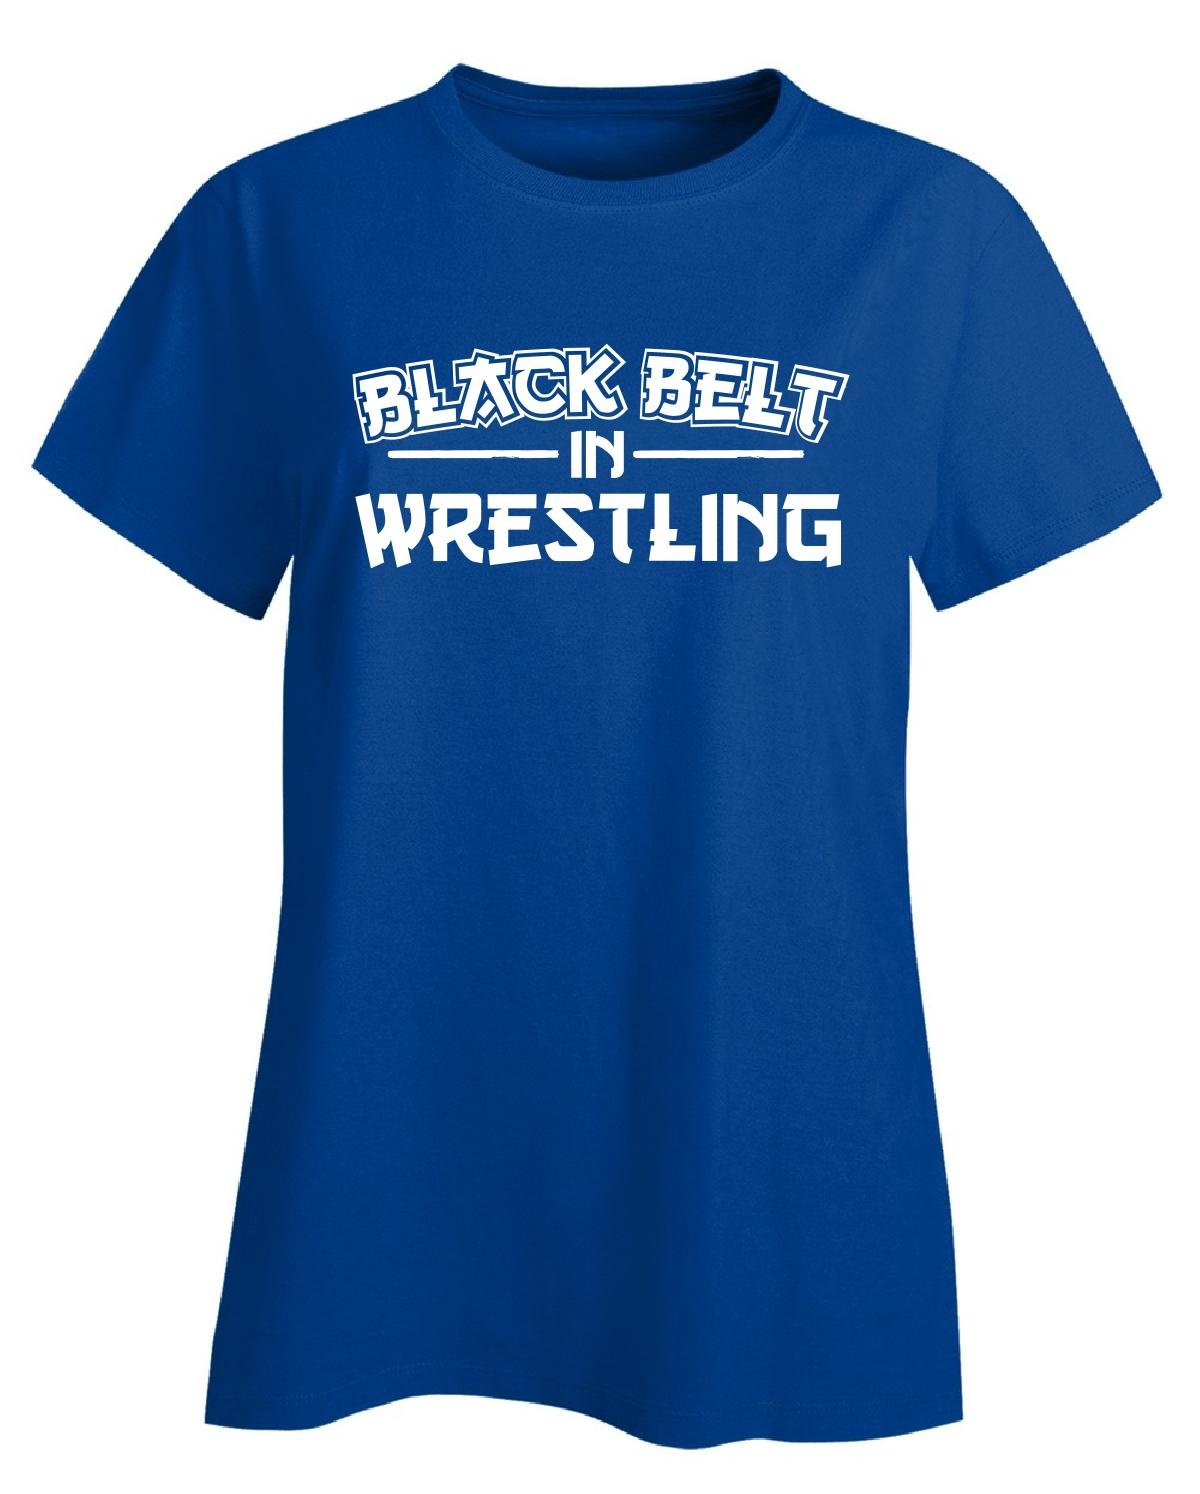 Black Belt In Wrestling Gift - Ladies T-shirt Ladies 3xl Royal by We Add Up